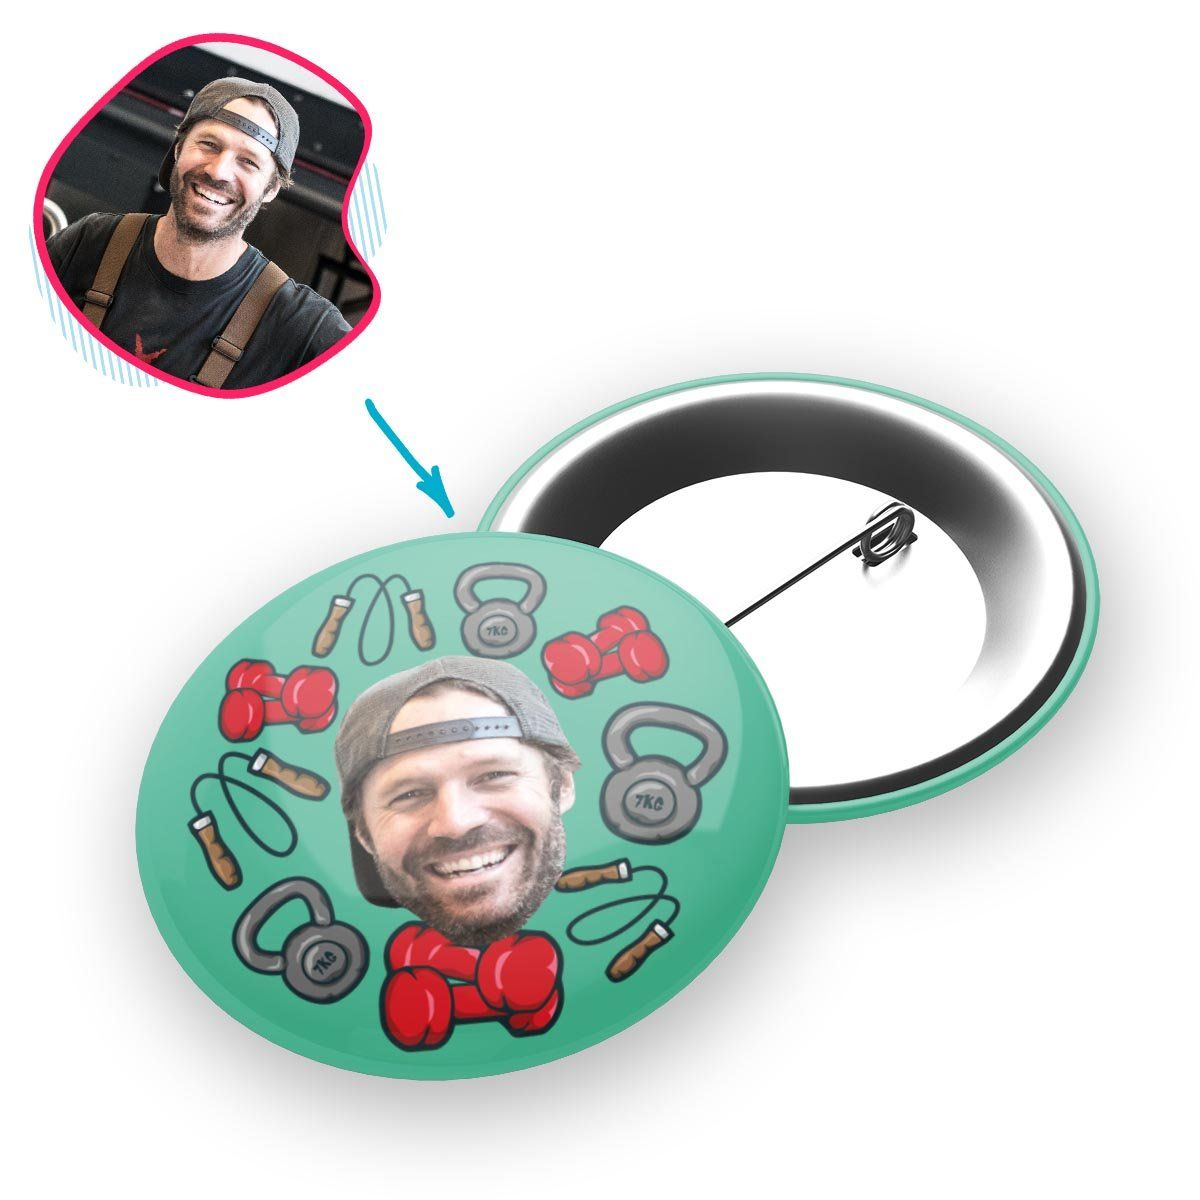 mint Gym & Fitness pin personalized with photo of face printed on it